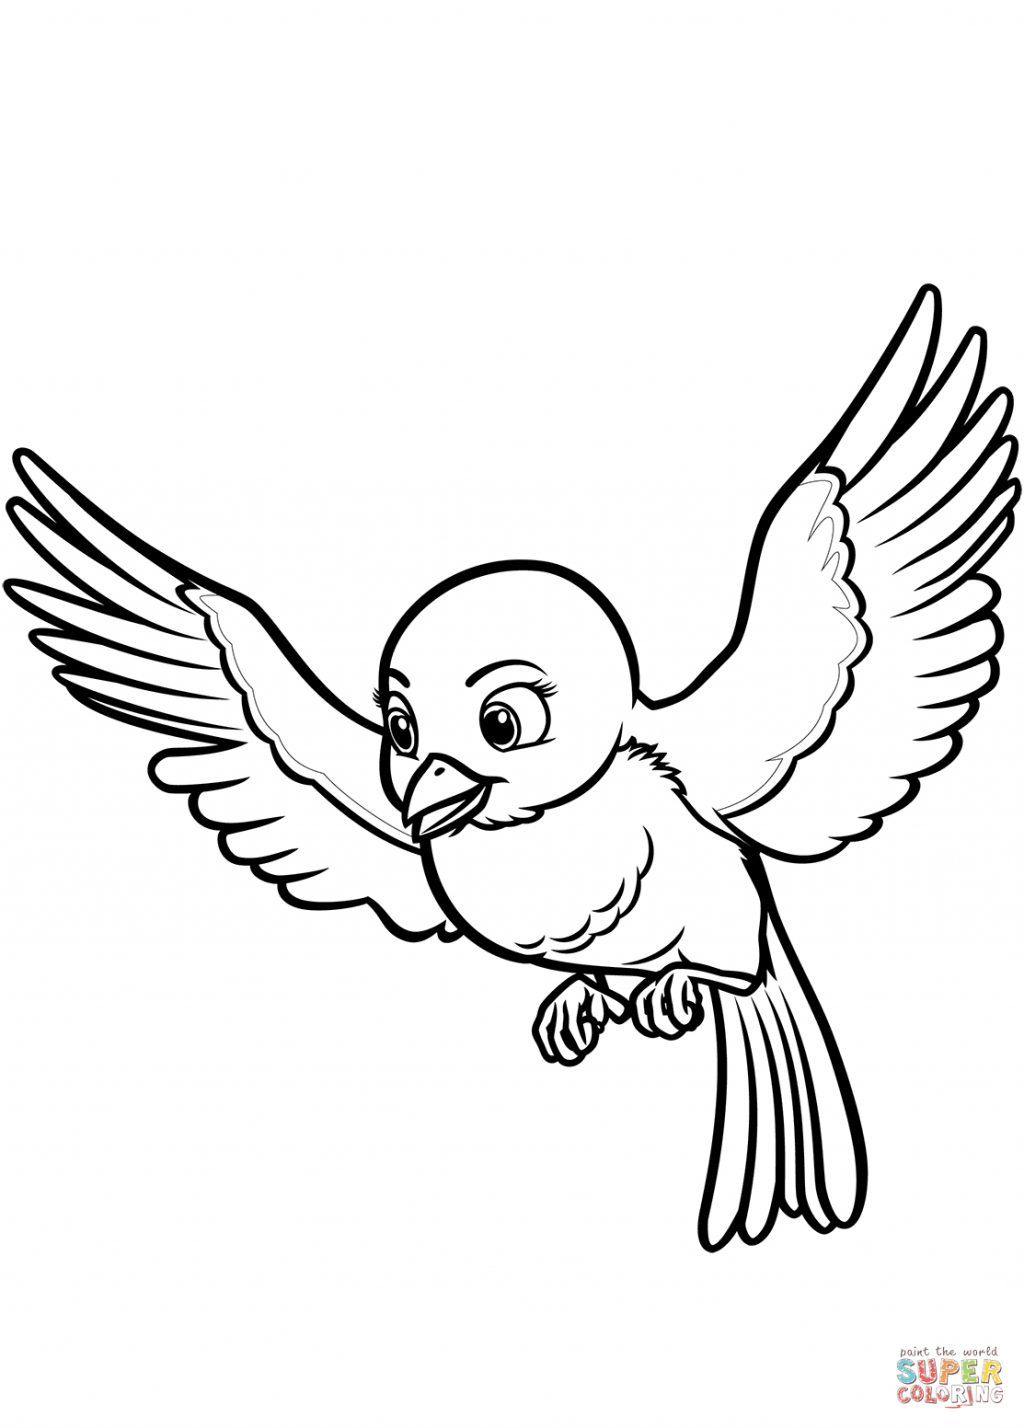 Bird Coloring Page Google Search Bird Coloring Pages Mermaid